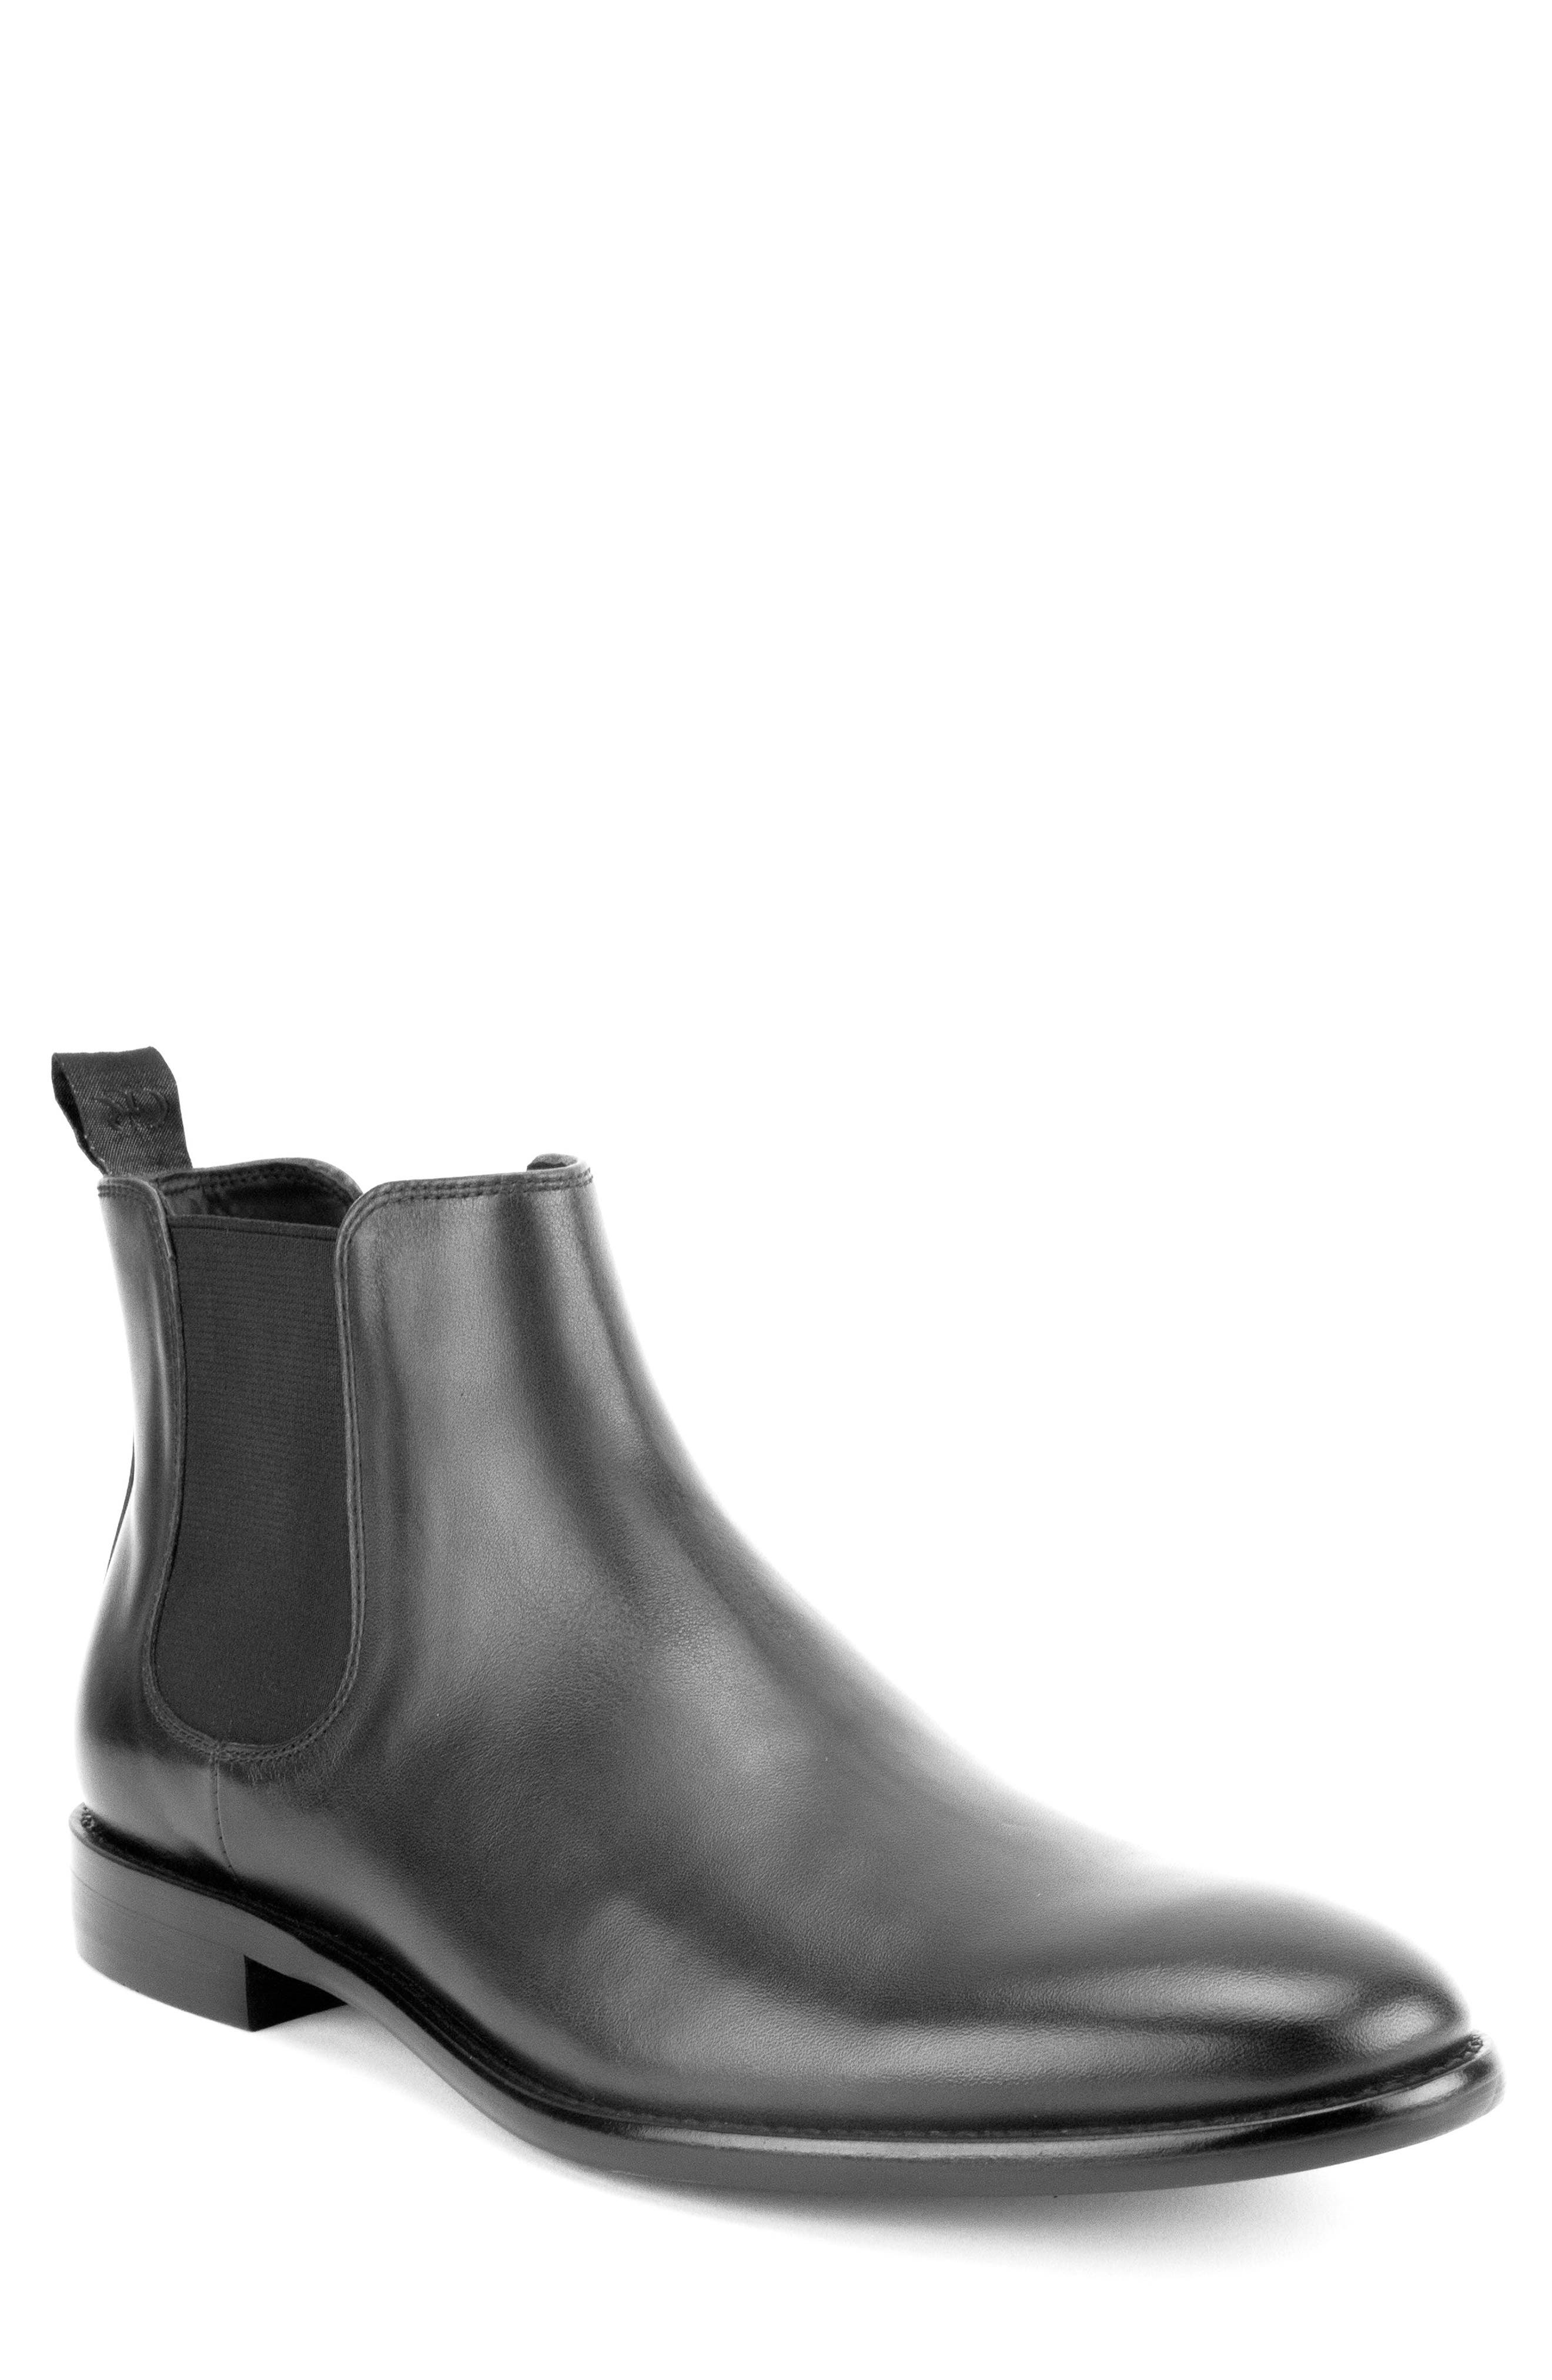 Gordon Rush Russell Mid Chelsea Boot